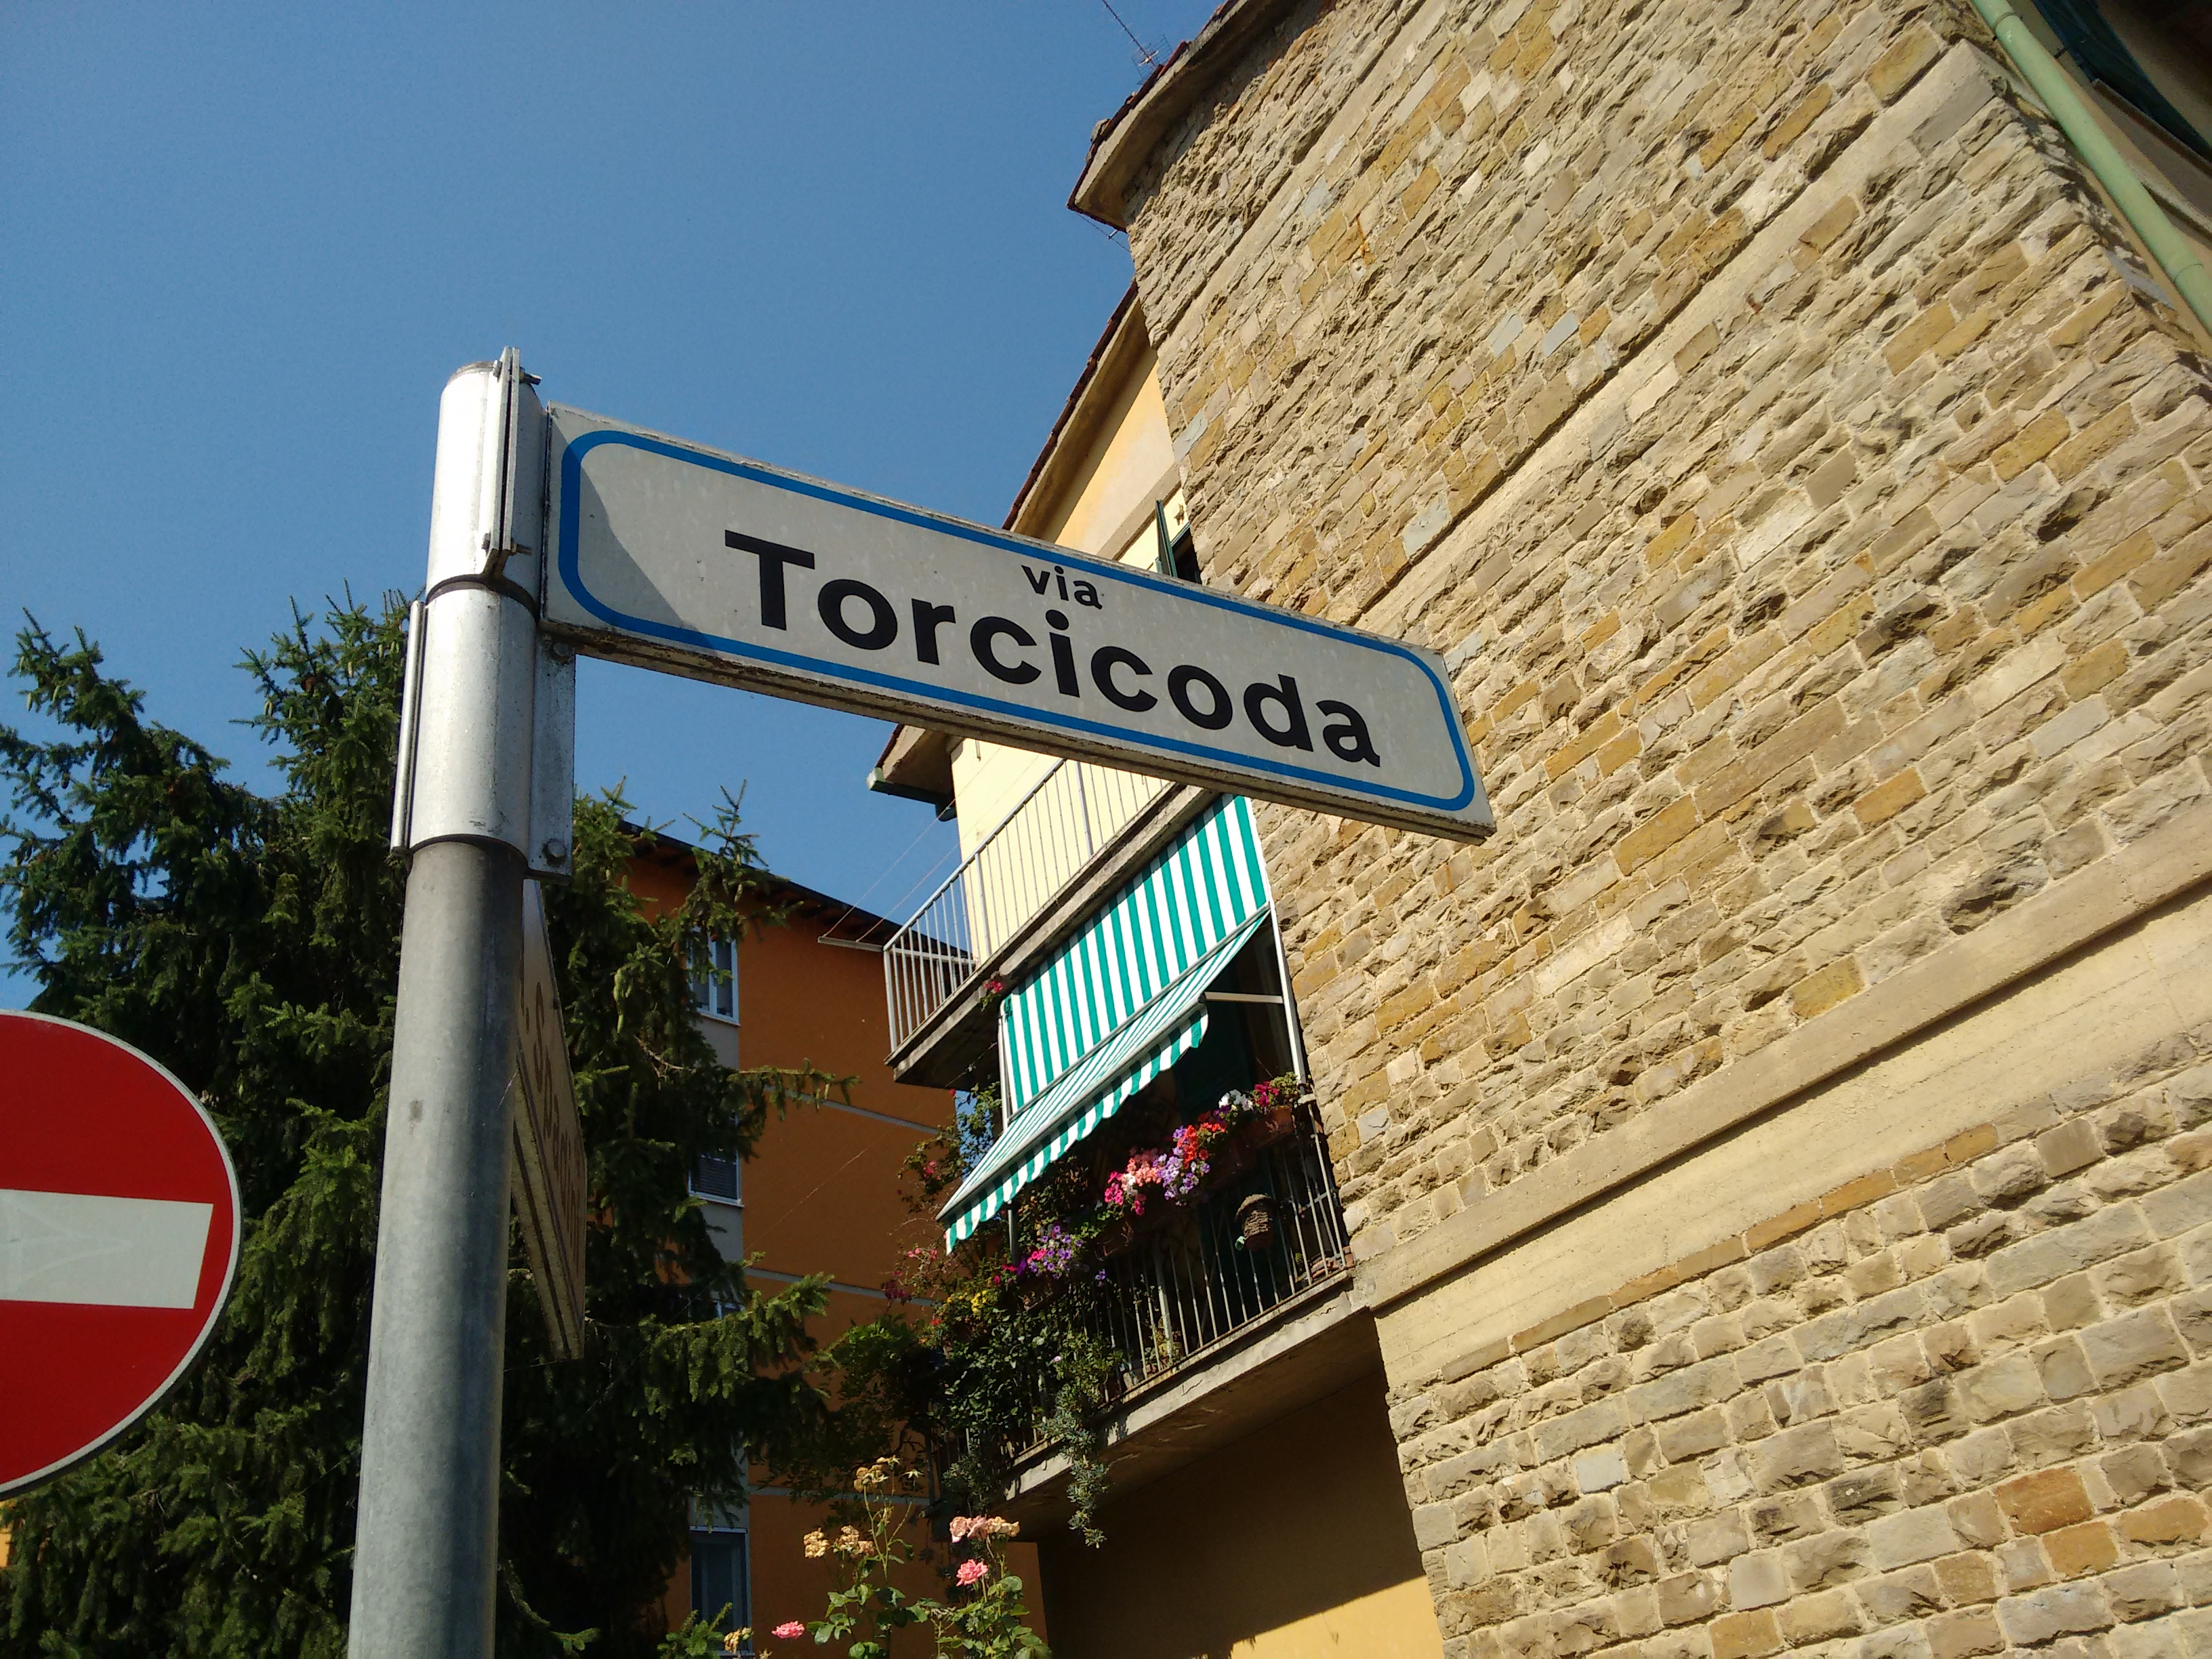 via-torcicoda-isolotto